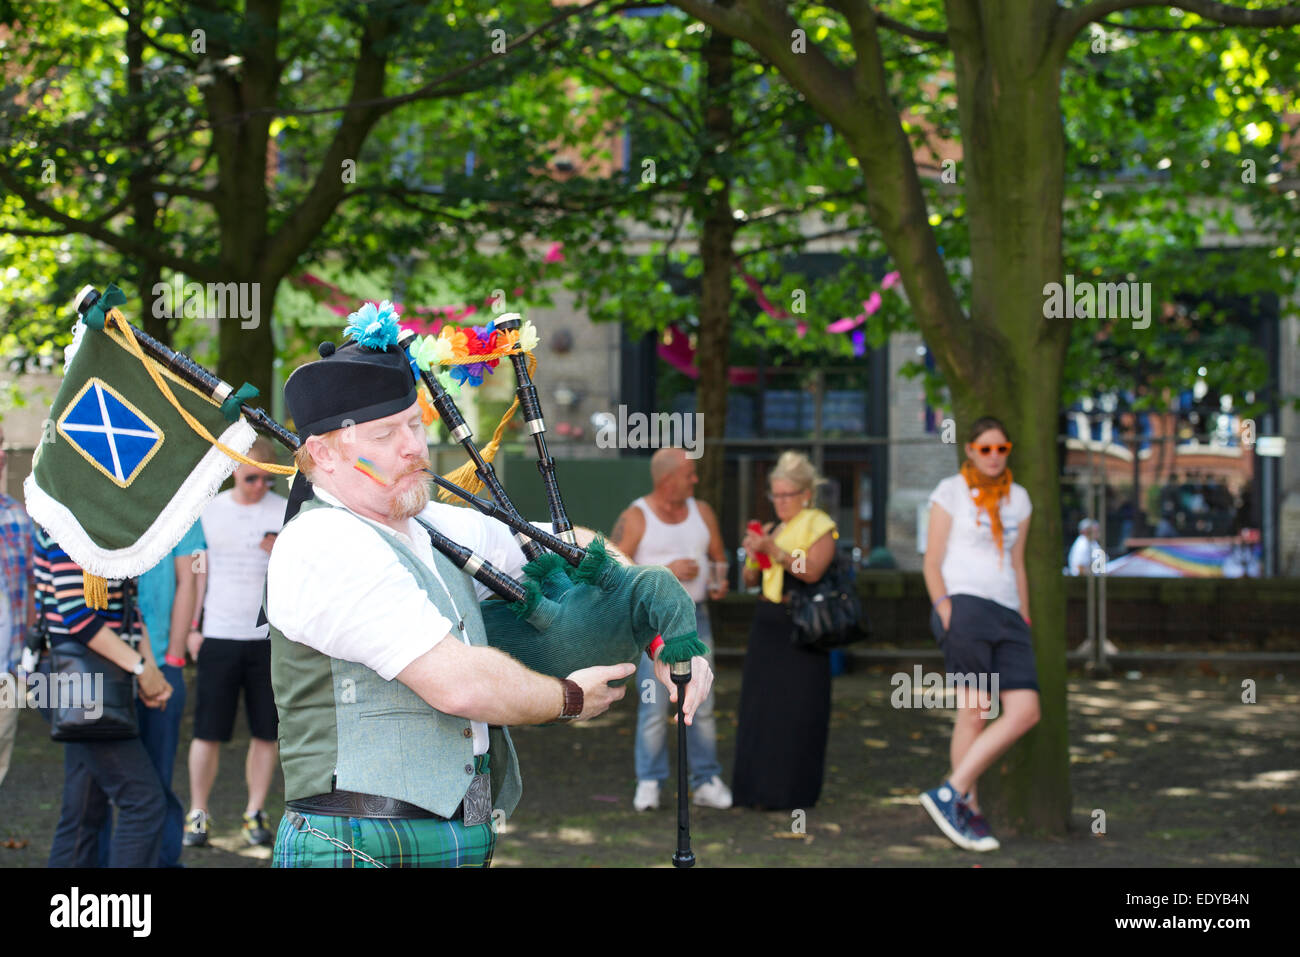 Piper plays in Sackville Gardens during the Manchester Gay Pride. - Stock Image